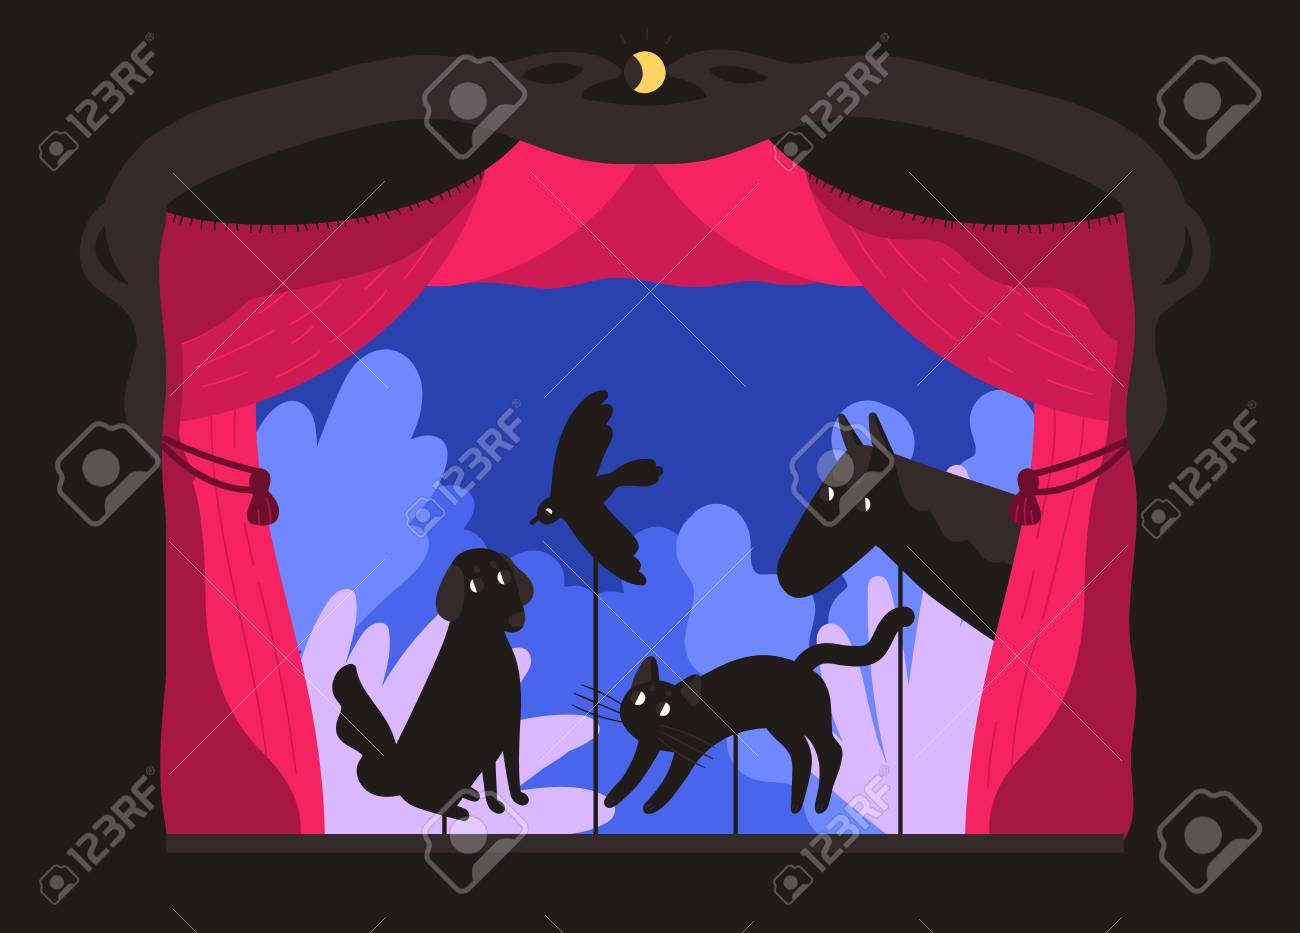 Rod shadow puppets manipulated by puppeteer at theater stage